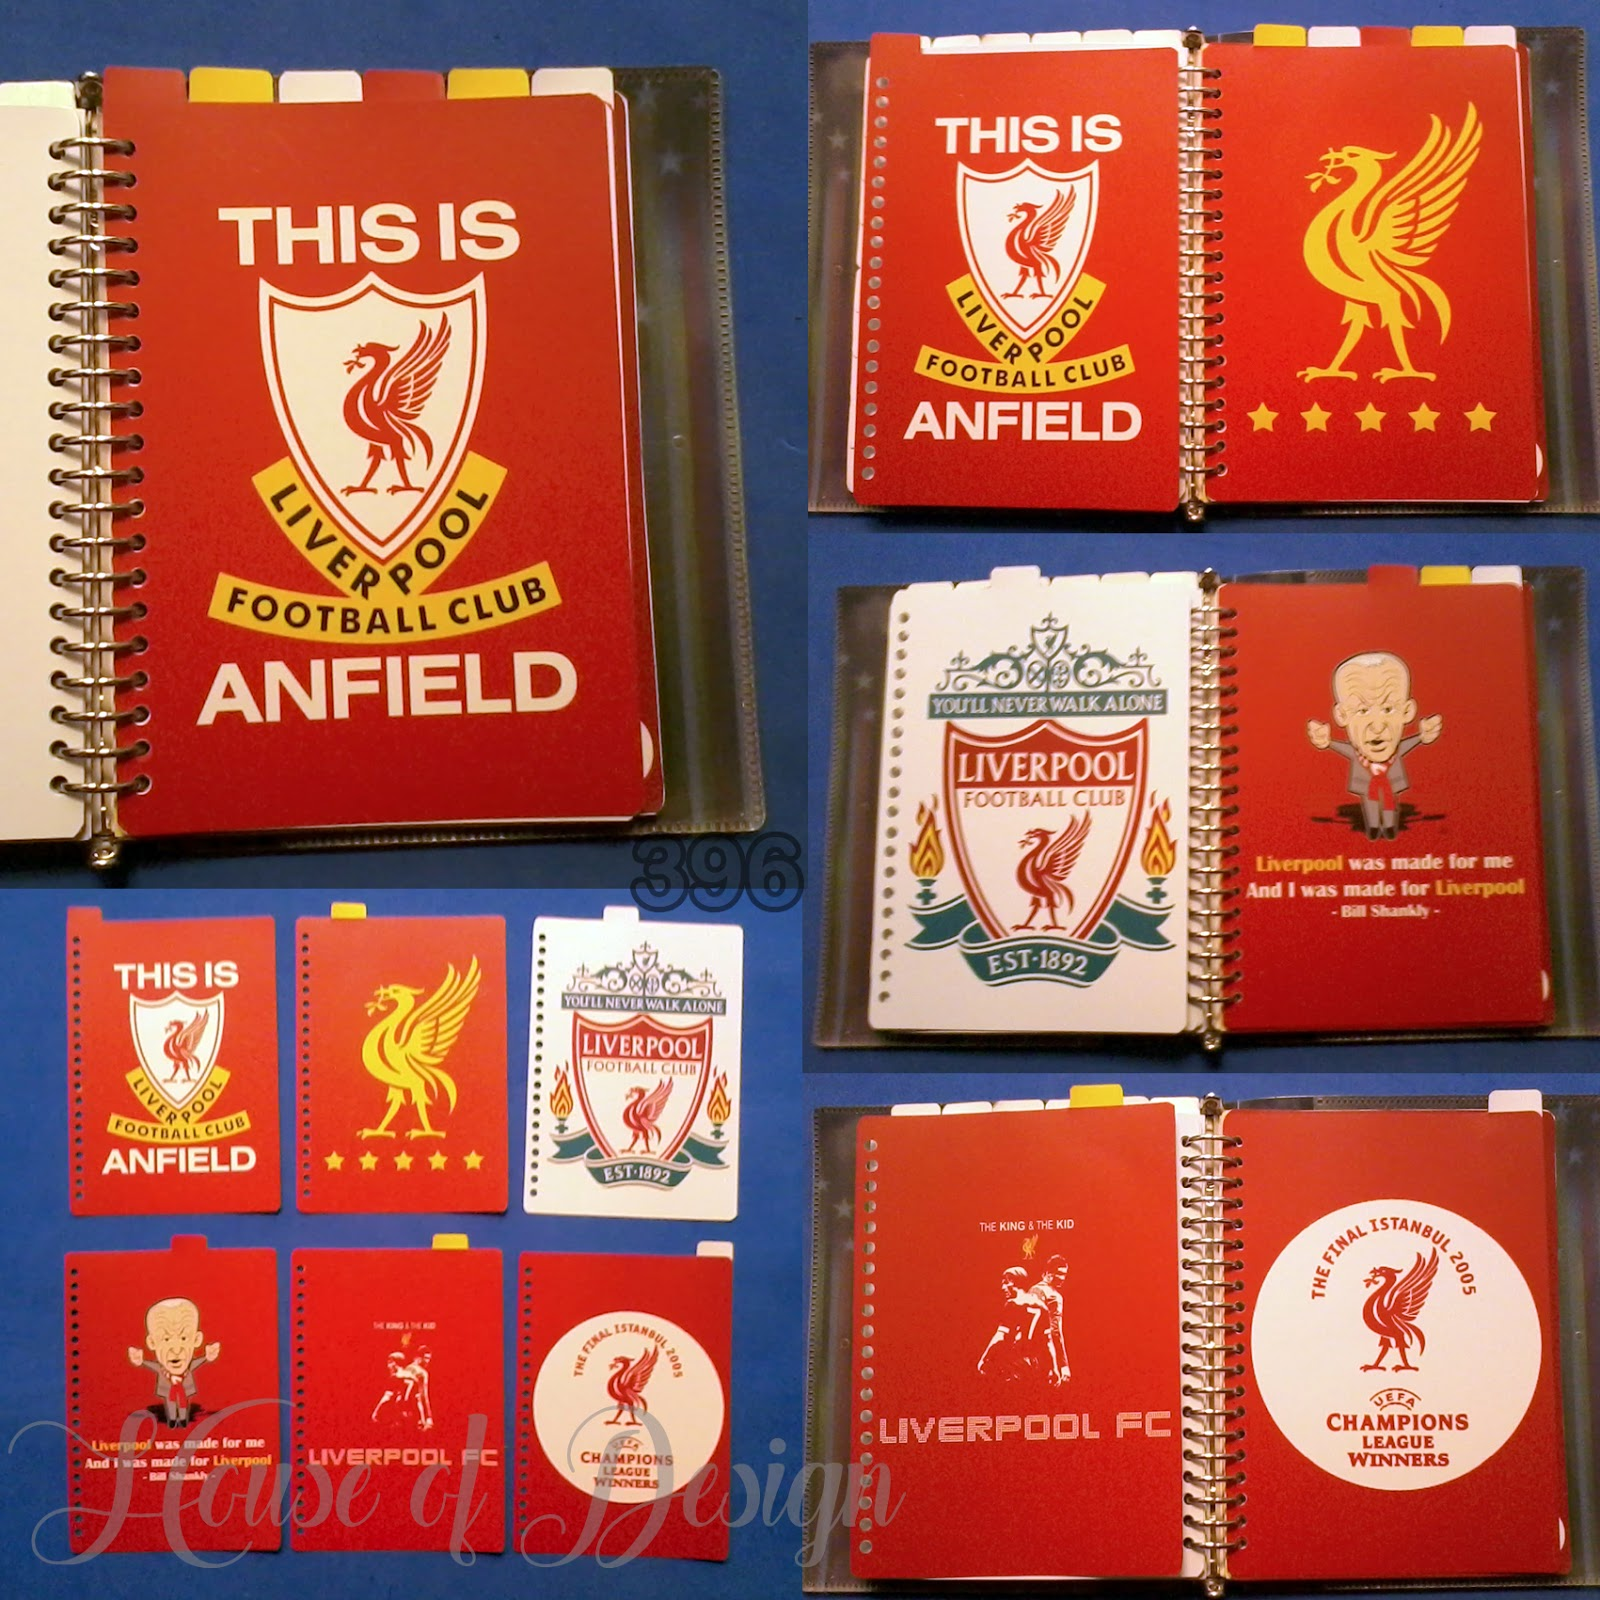 DIVIDER BINDER CUSTOM, PEMBATAS BINDER CUSTOM, PEMBATAS BINDER 20 RING UKURAN A5 CUSTOM, PEMBATAS ATAS, PEMBATAS BINDER FOOTBALL, PEMBATAS THIS IS ANFIELD, PEMBATAS BINDER LIVERPOOL, PEMBATAS BINDER RED